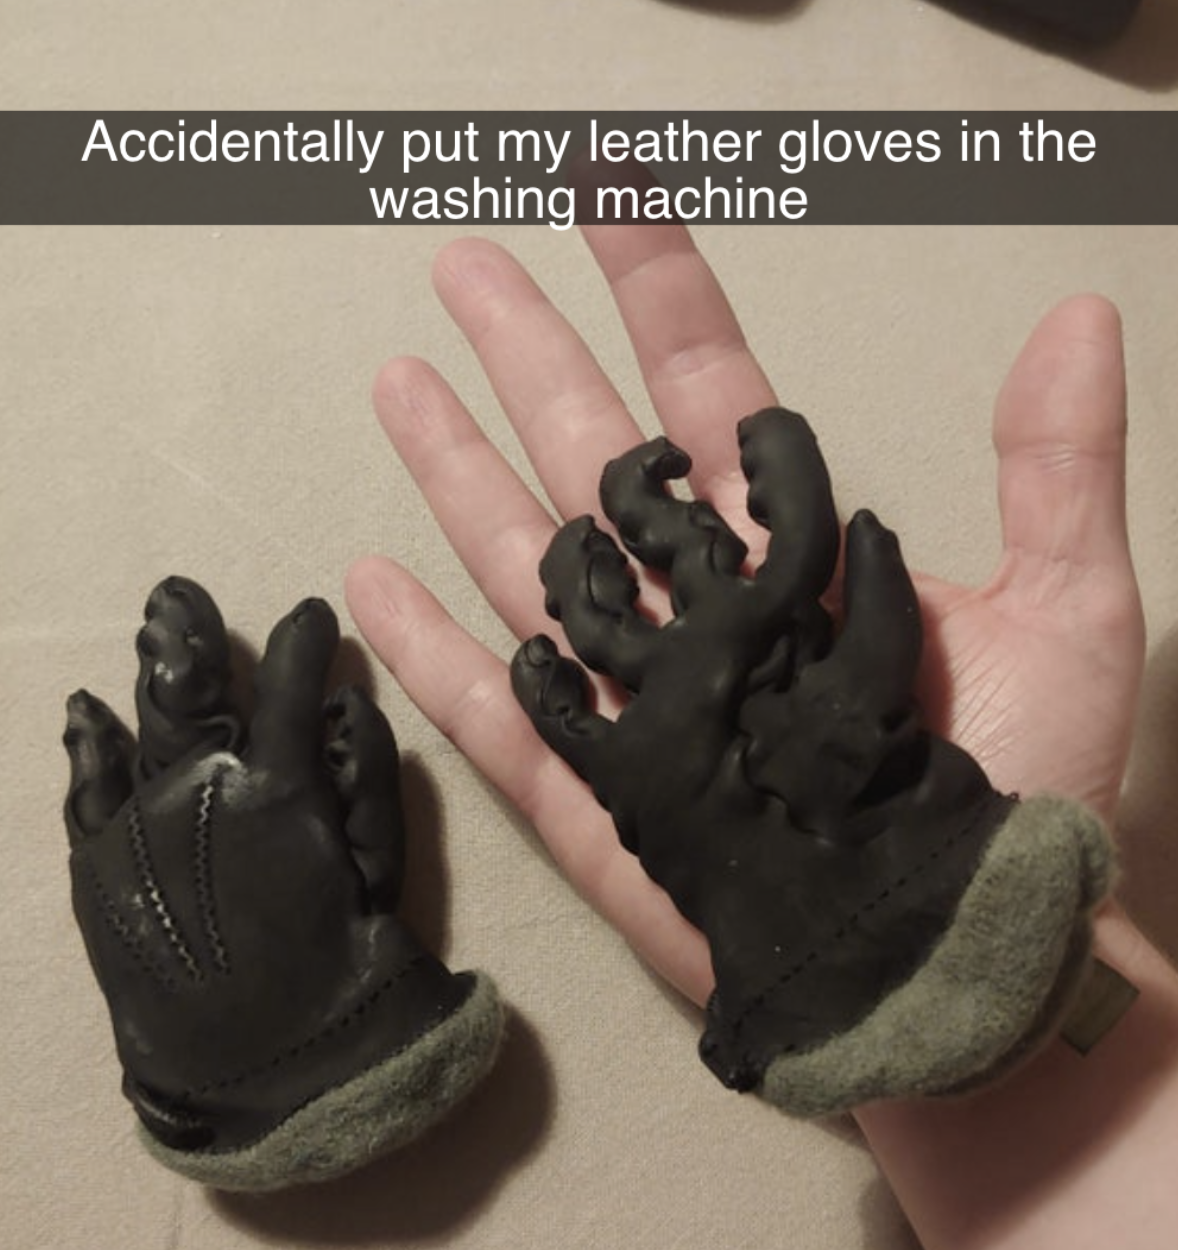 snapchat reading i accidentally put my gloves in the washing machine and they have shrunk